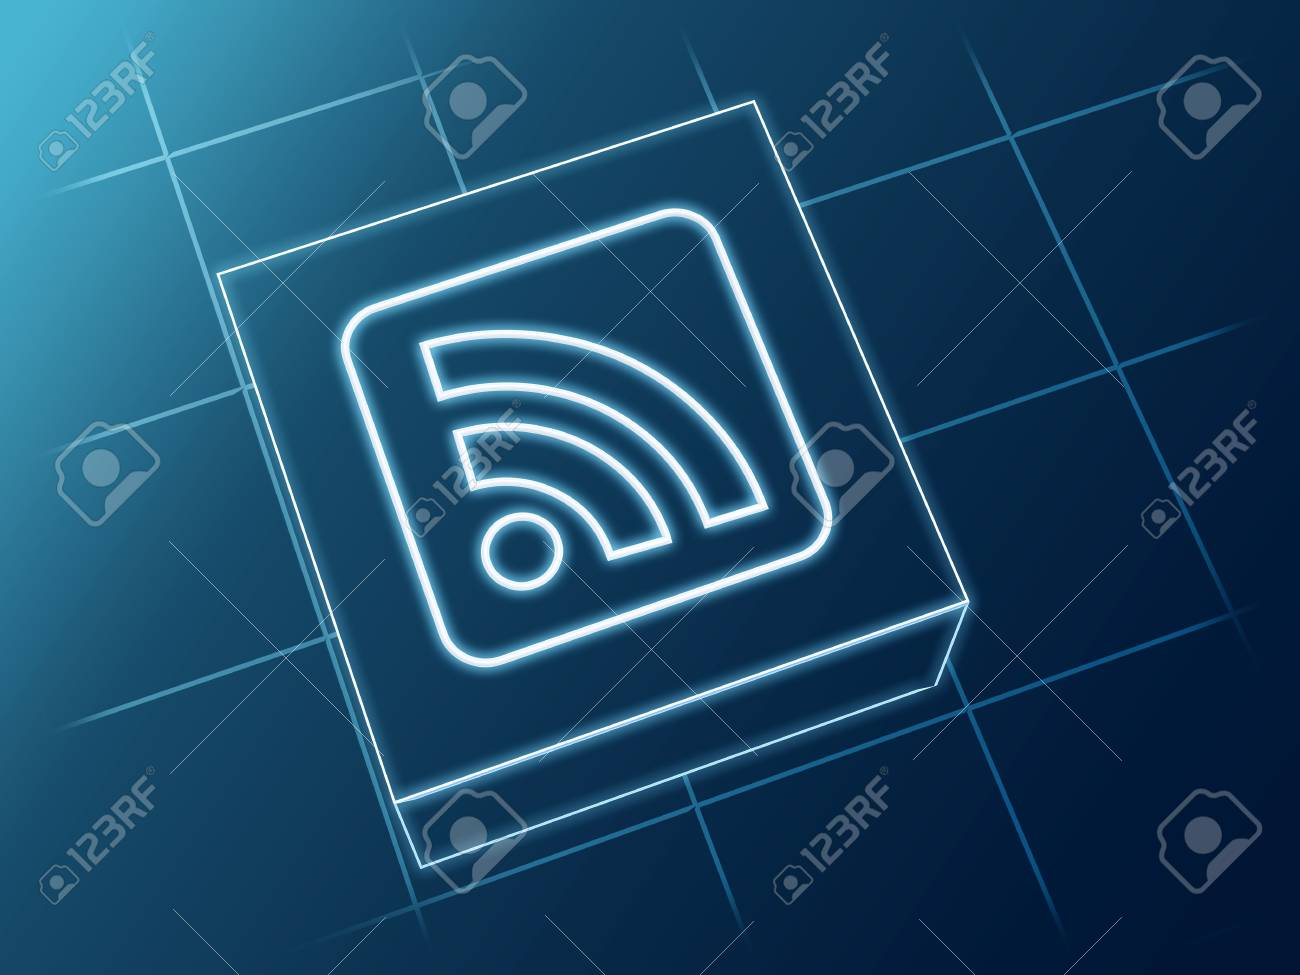 Wire Glowing Rss News Sign Over Box And Net Stock Photo, Picture And ...